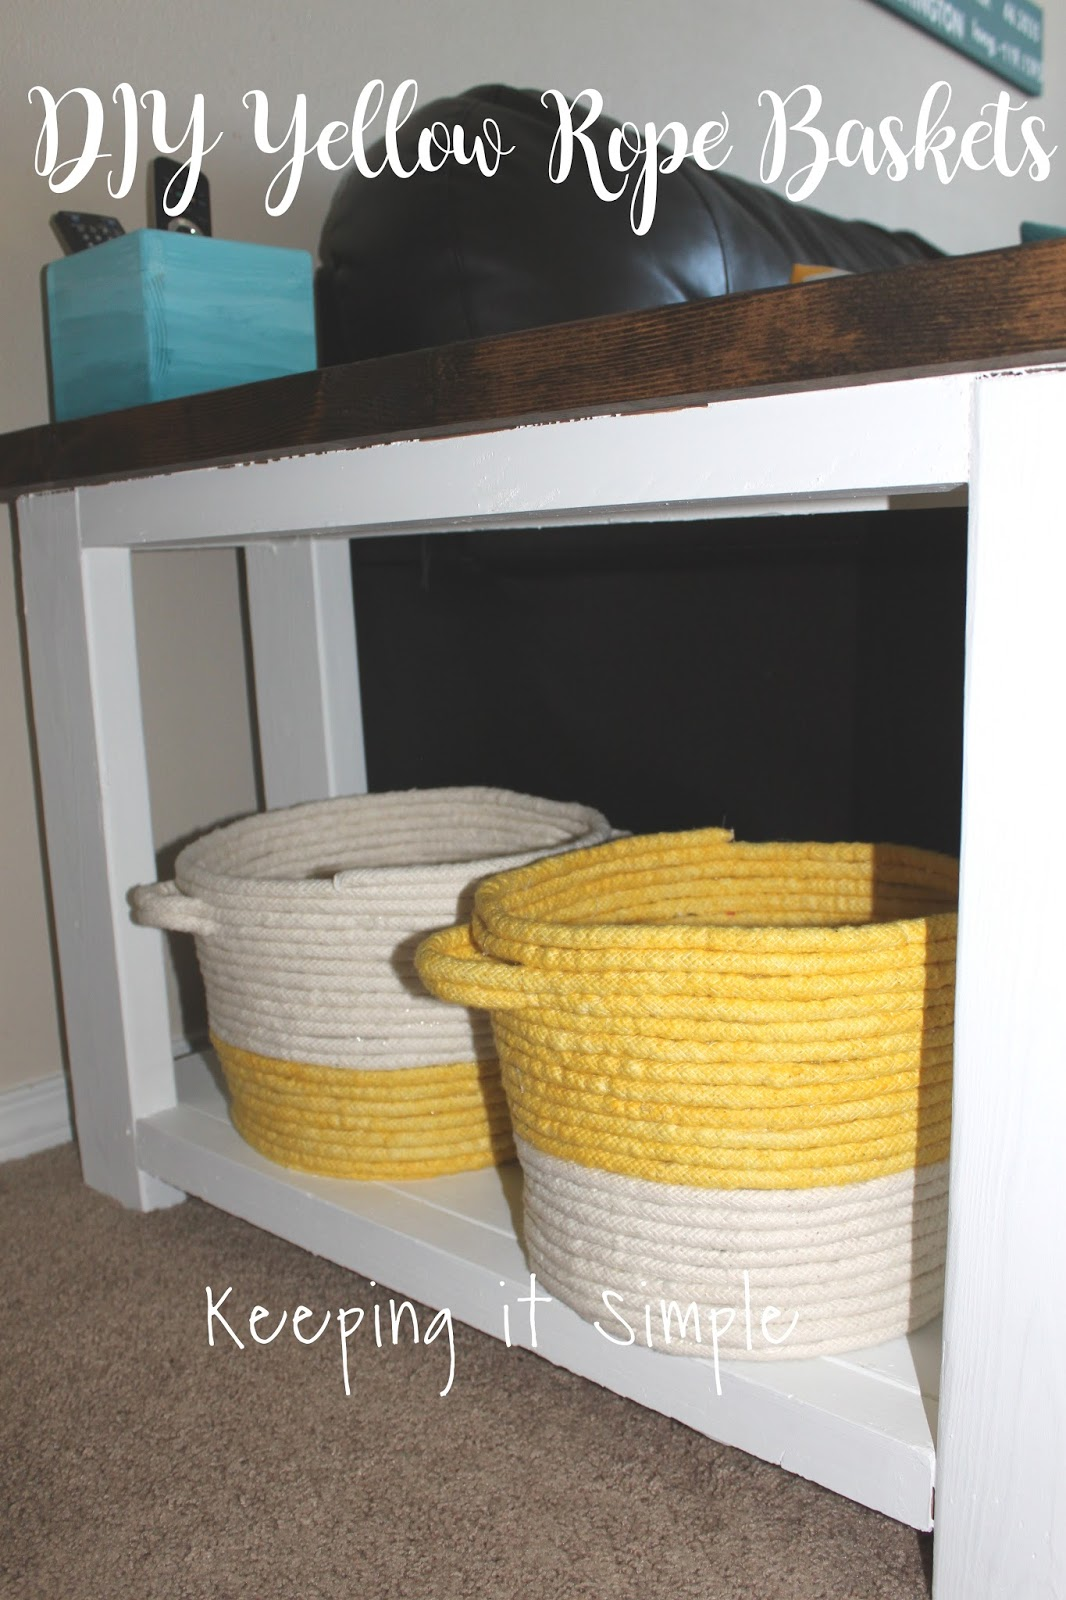 Diy No Sew Yellow Rope Baskets Keeping It Simple